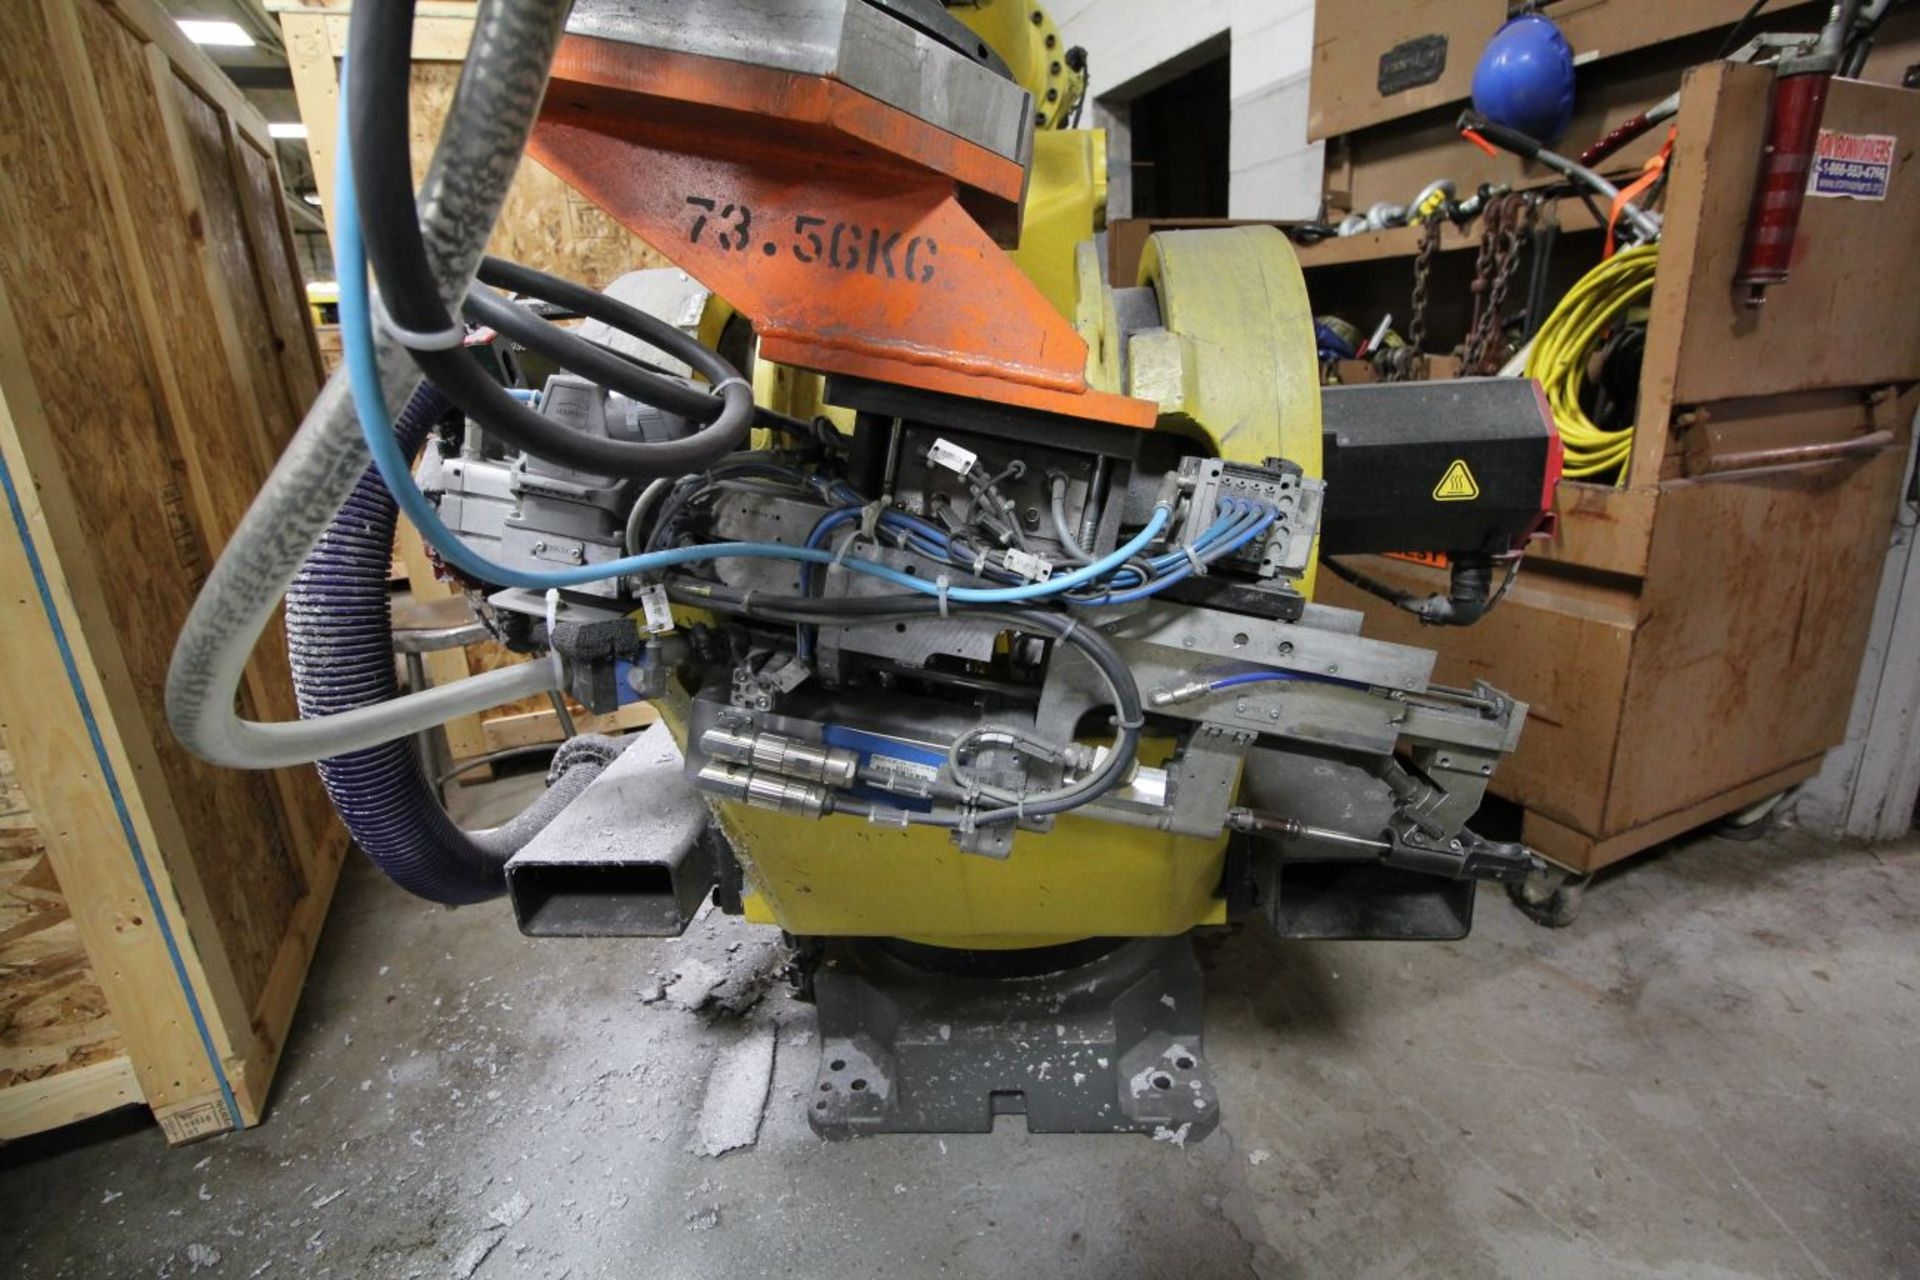 Lot 12 - FANUC ROBOT M900iA/350 WITH R-30iA CONTROL, TEACH & CABLES, HOURS 6892, YEAR 2011, SN 111705